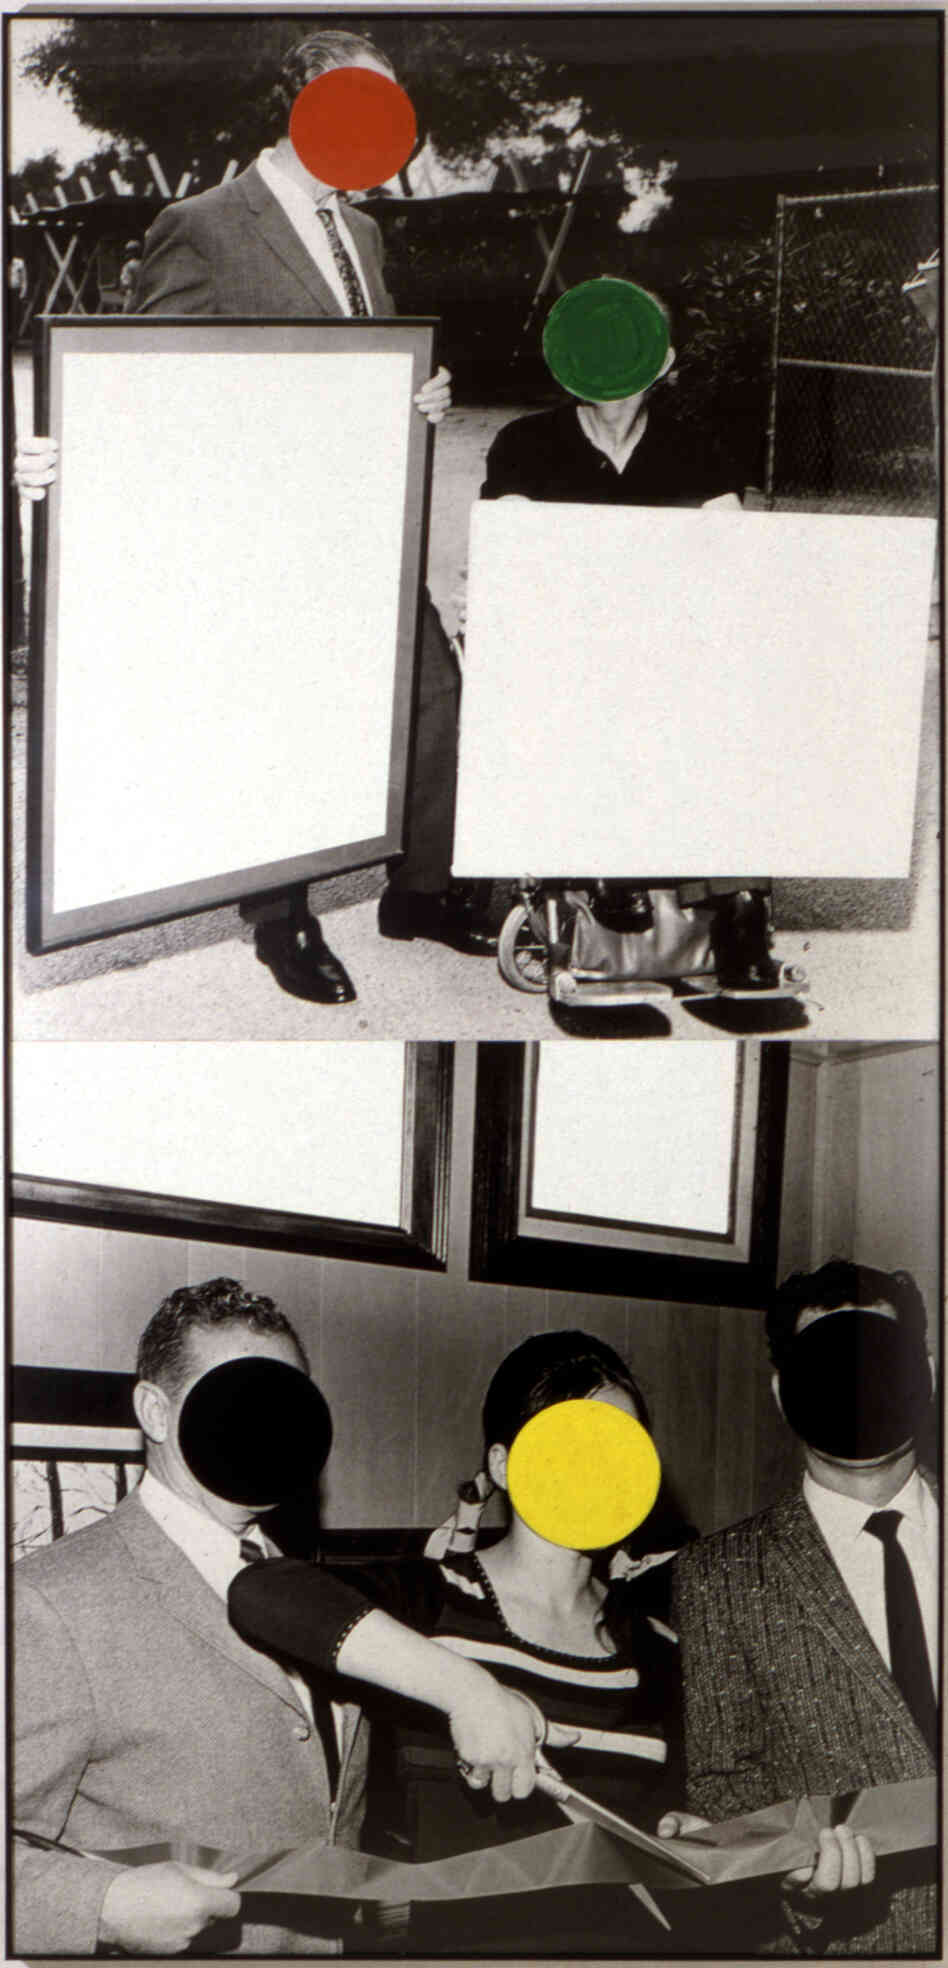 """Cutting Ribbon, Man In Wheelchair, Paintings (Version #2), 1988"" shows John Baldessari's signature technique, faces covered with colorful circles. The practice had its genesis when the artist idly stuck a price sticker on the face of someone pictured in a newspaper clipping."